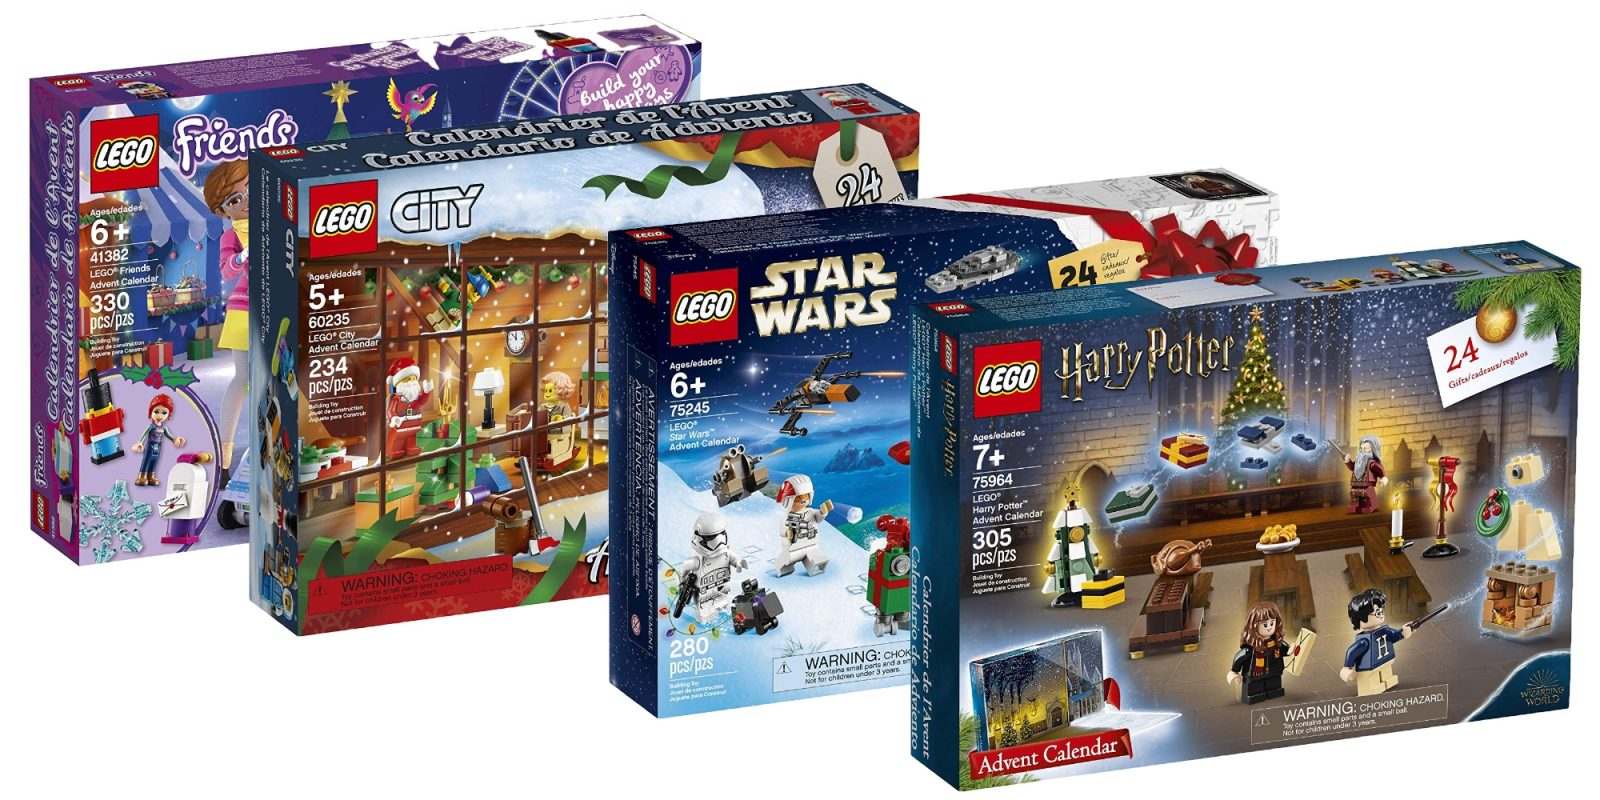 Calendrier Avent Lego Star Wars 2019.Lego 2019 Advent Calendars Include Harry Potter And More